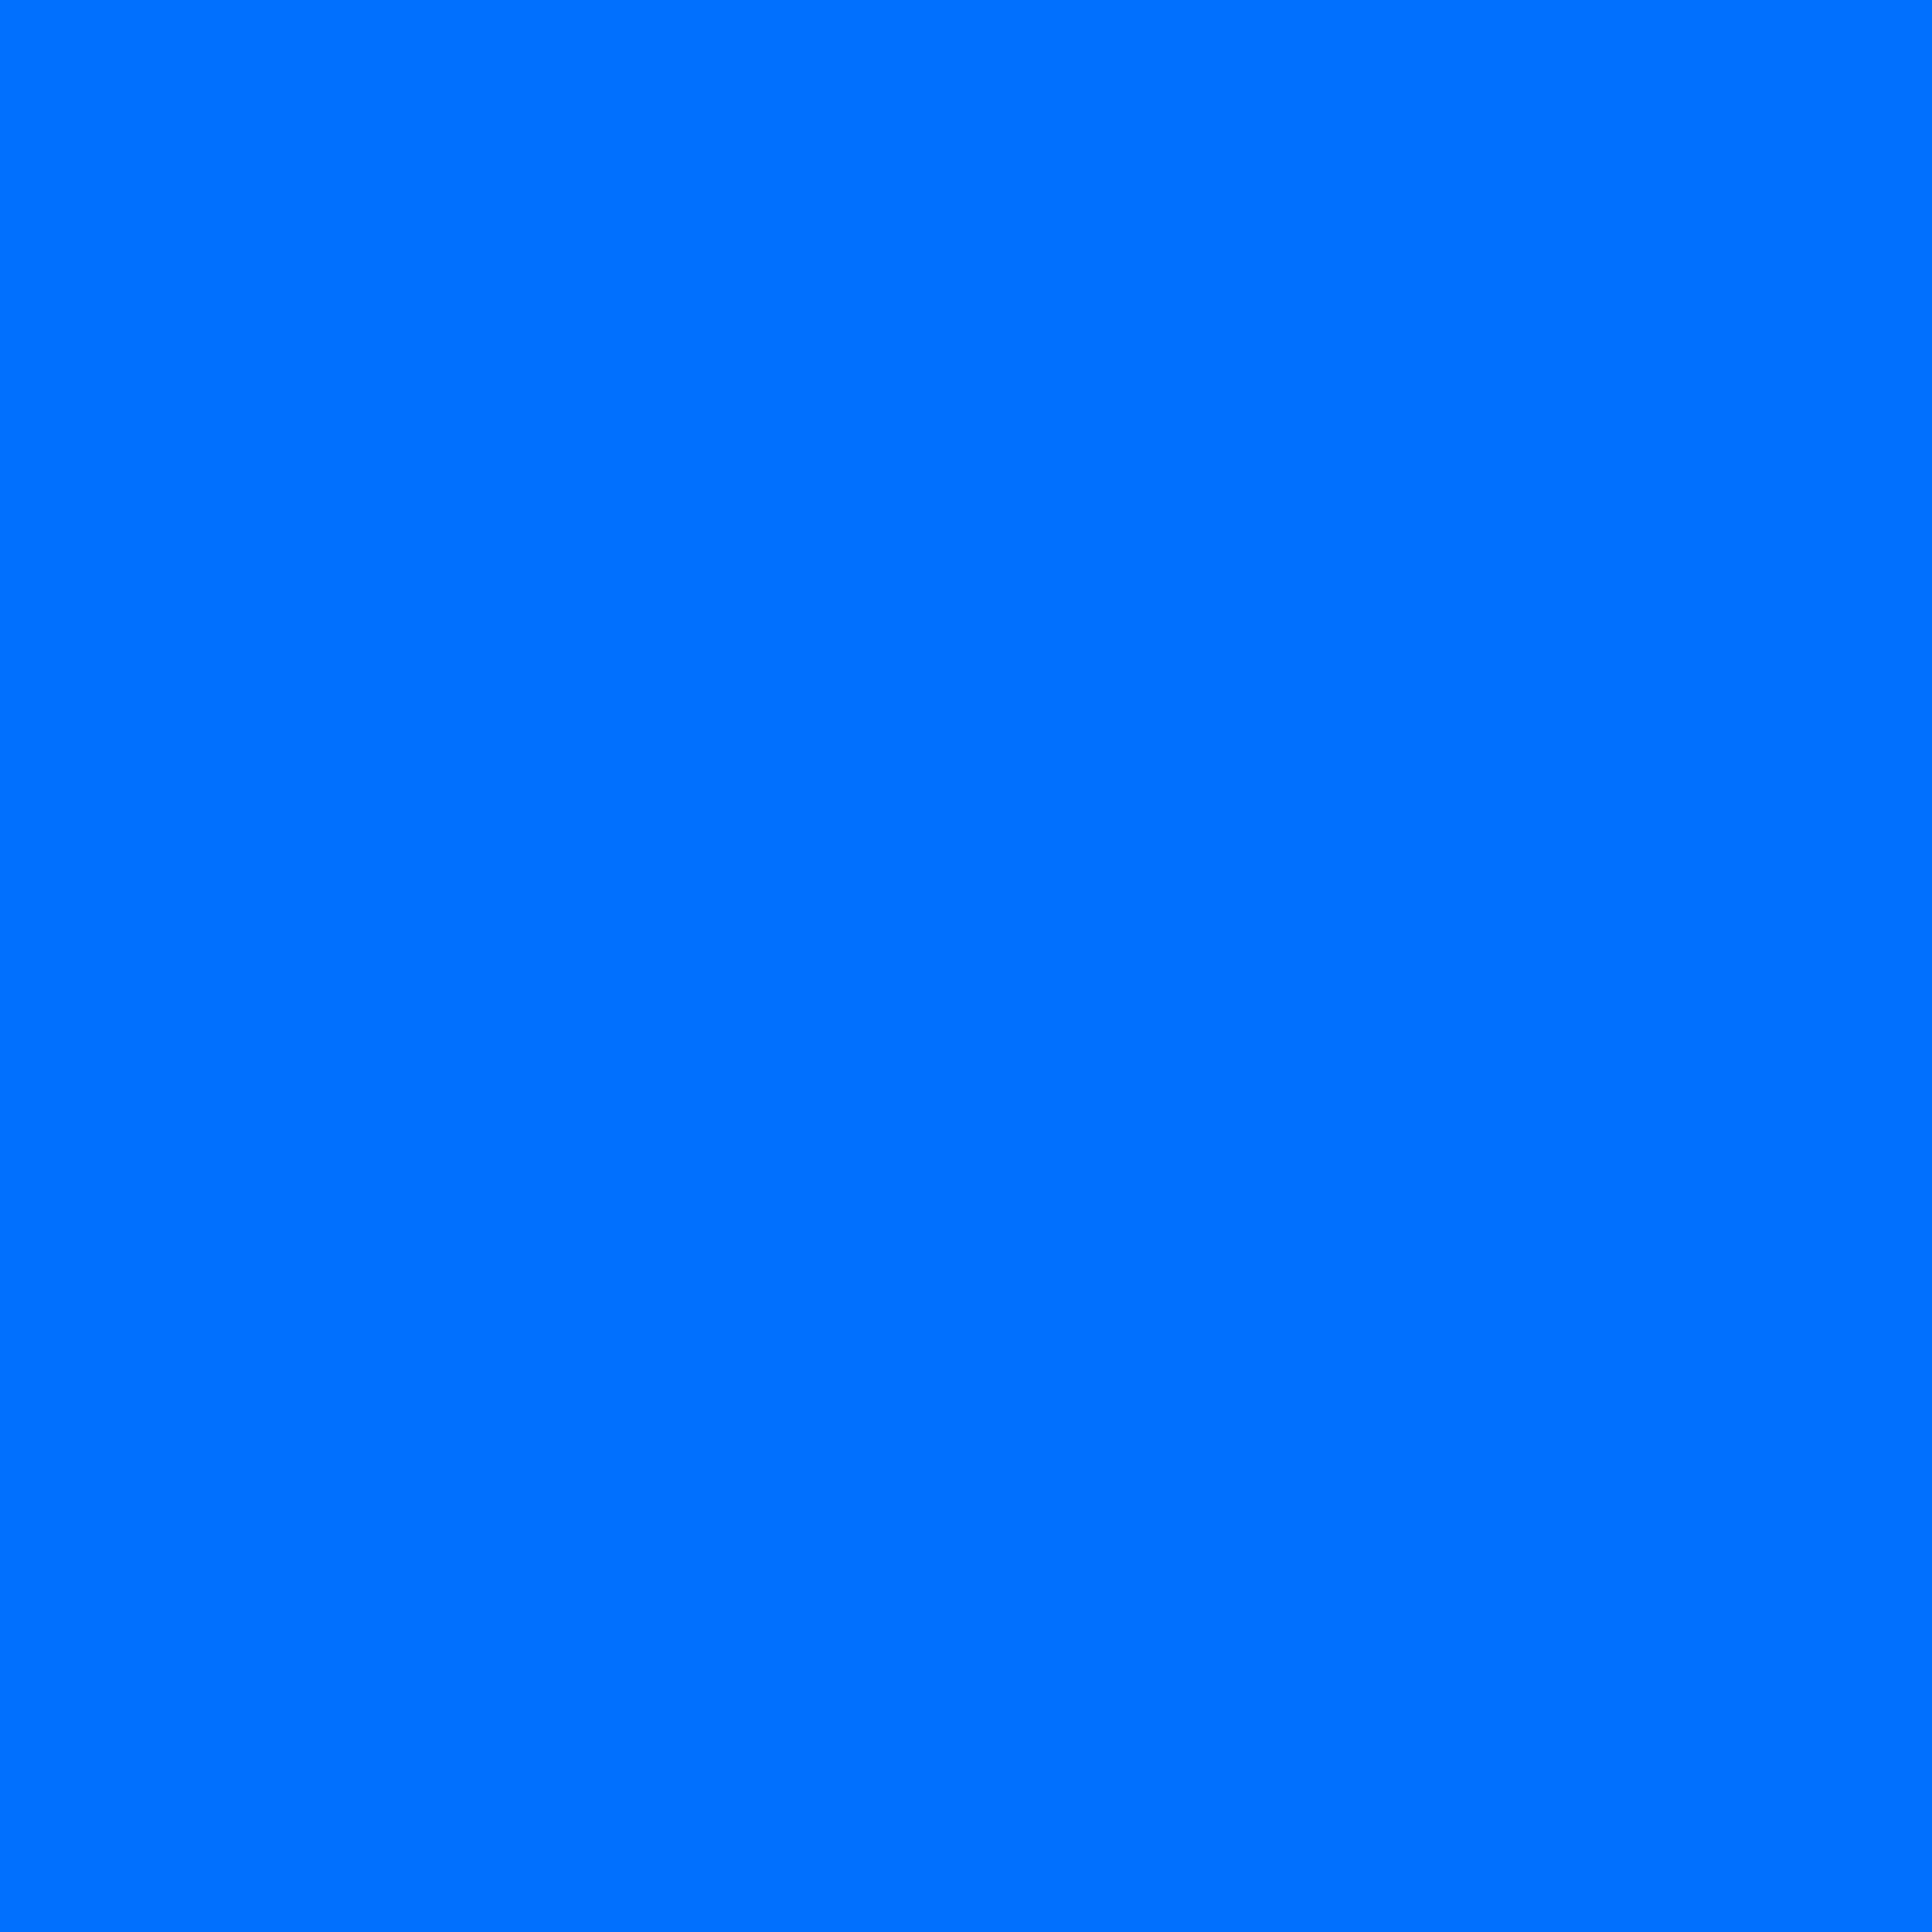 2048x2048 Brandeis Blue Solid Color Background